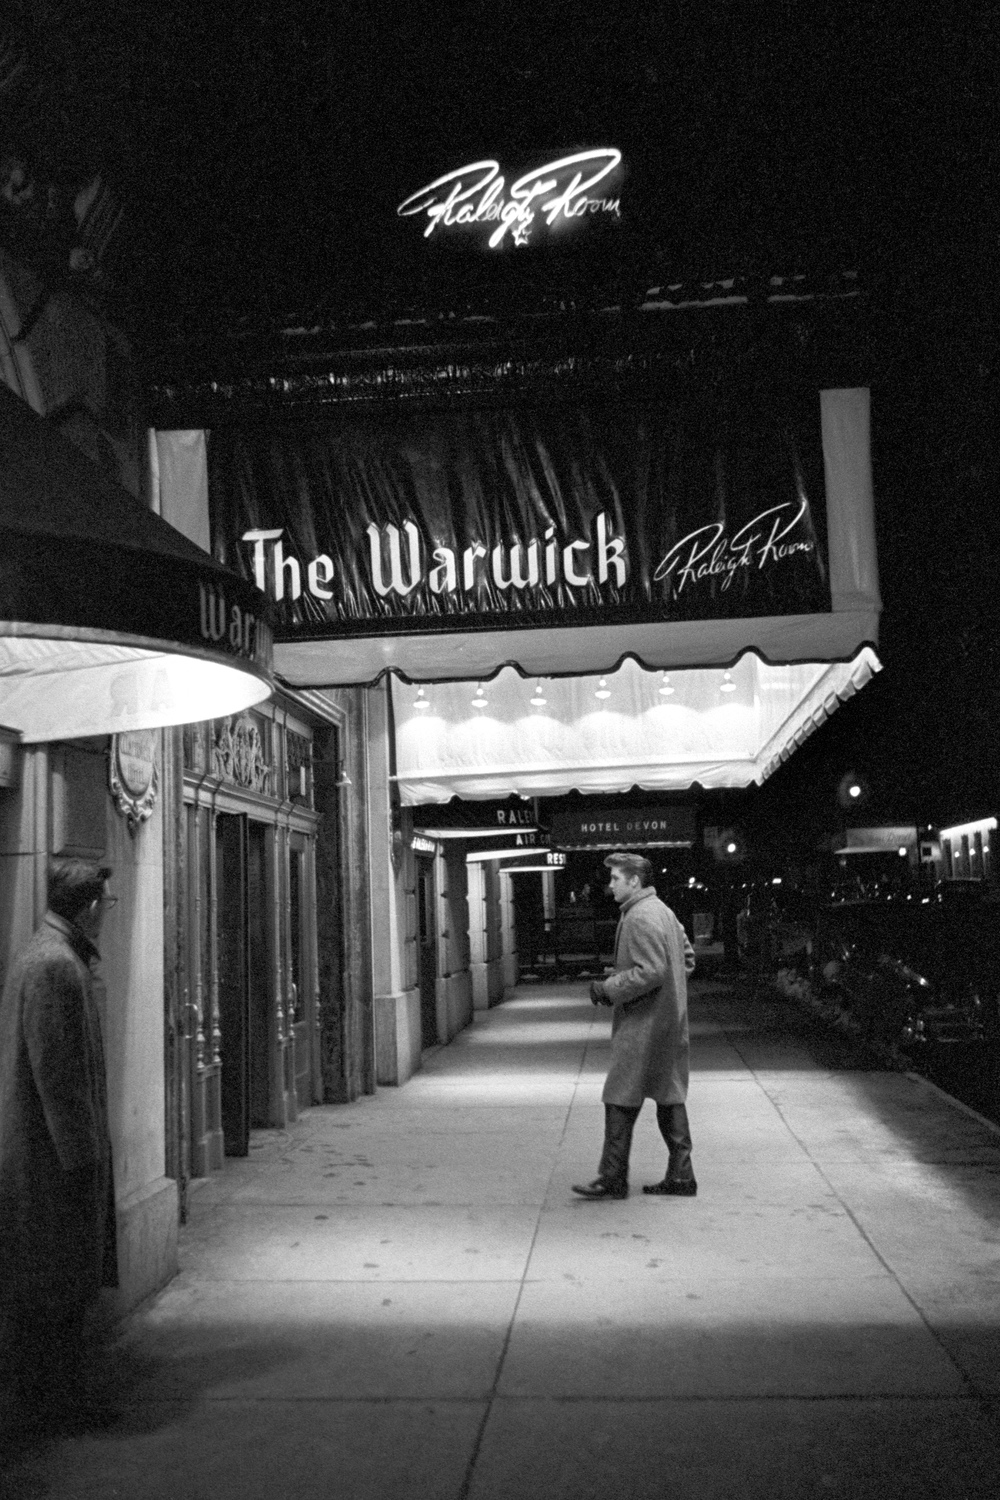 Elvis outside the Warwick Hotel in New York City.